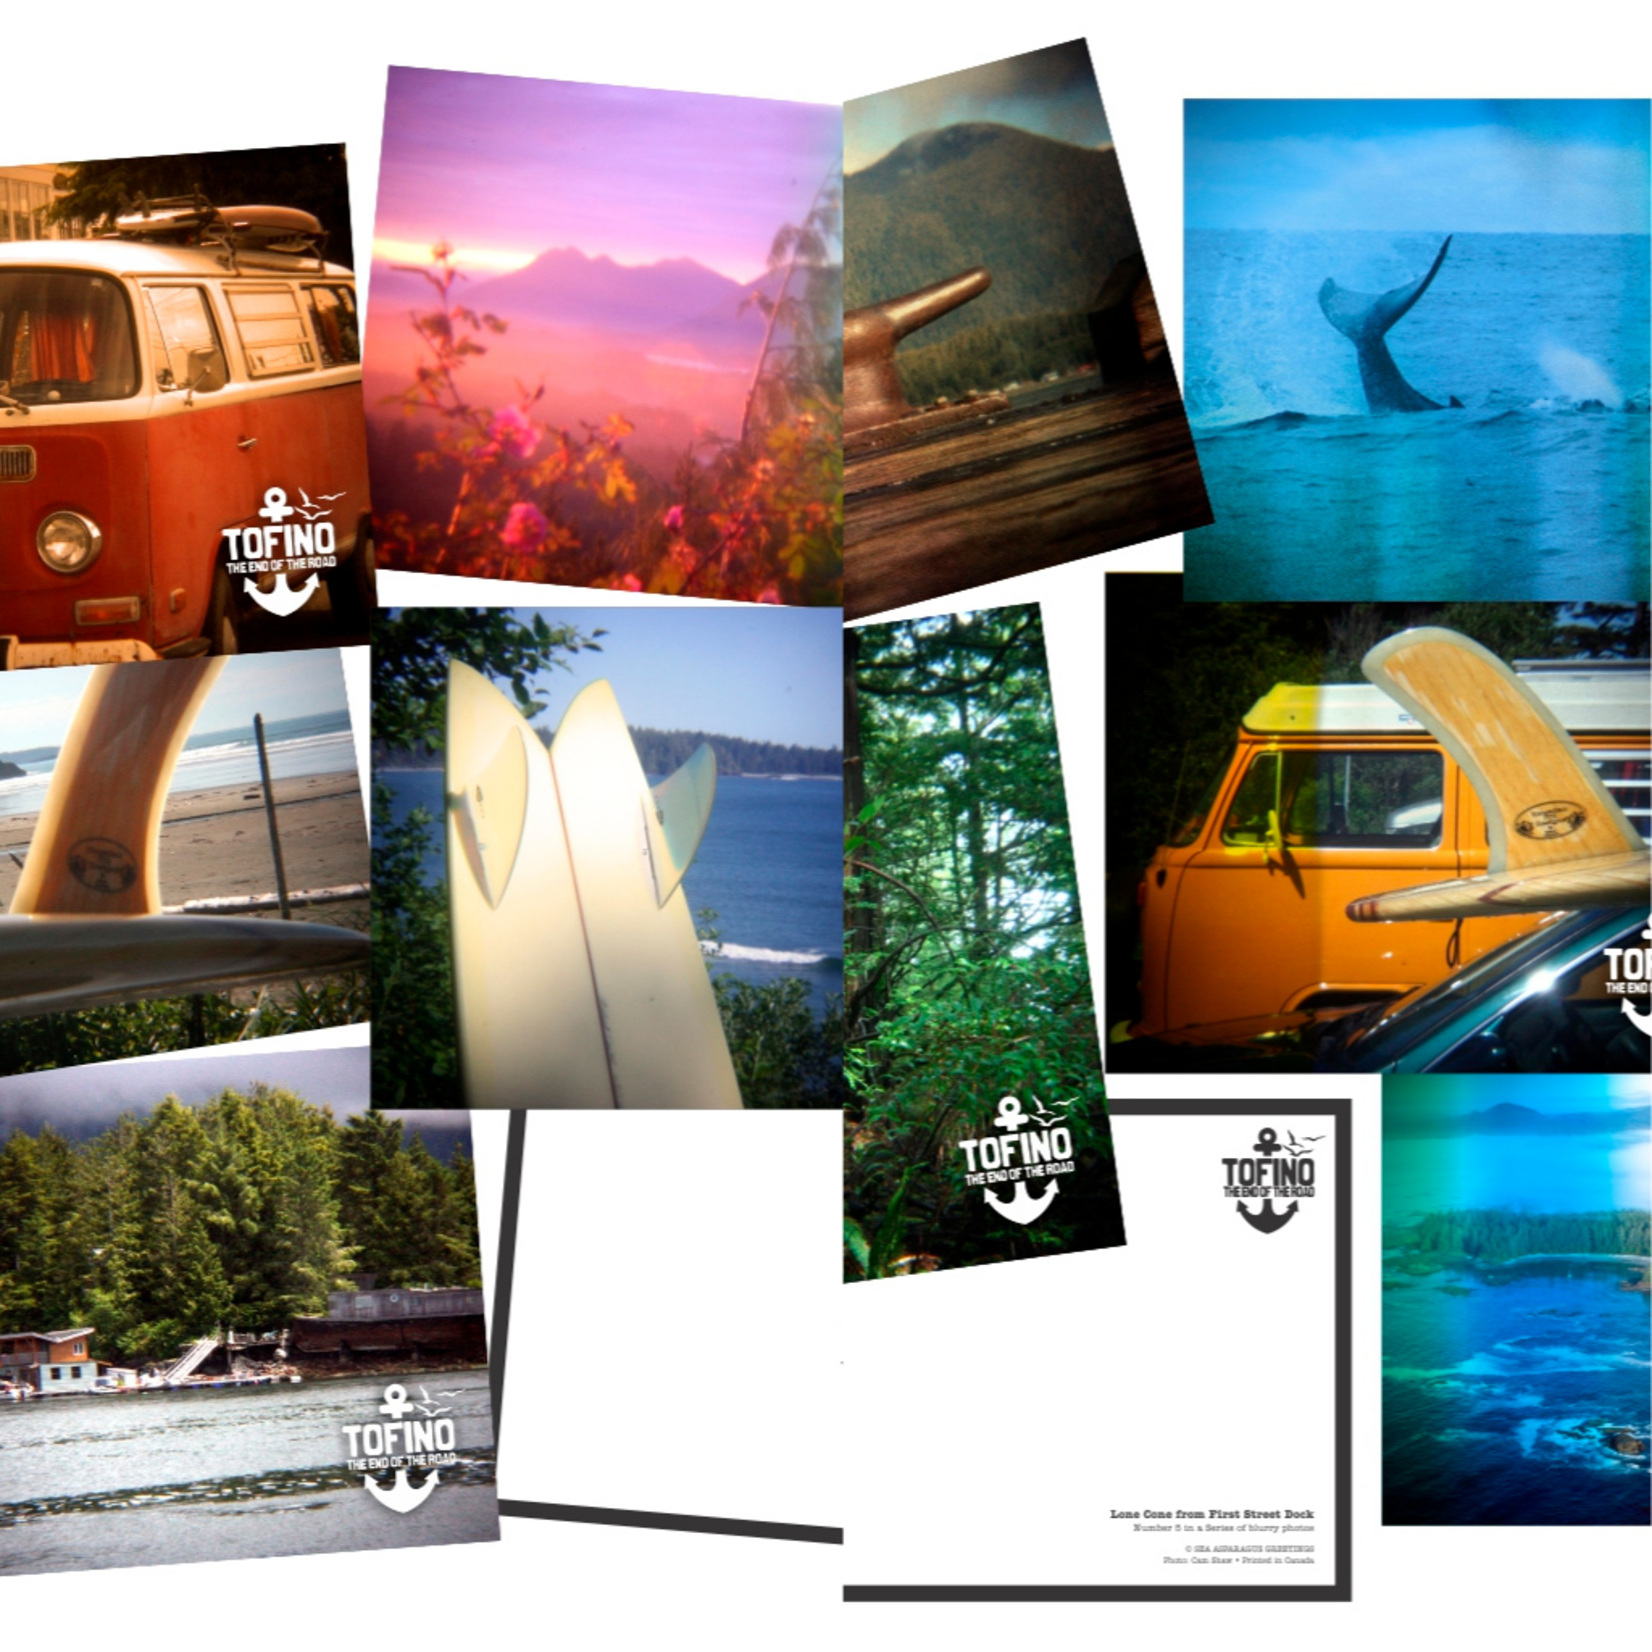 Local Tofino: End of the Road (5) Postcard Set - Series 1